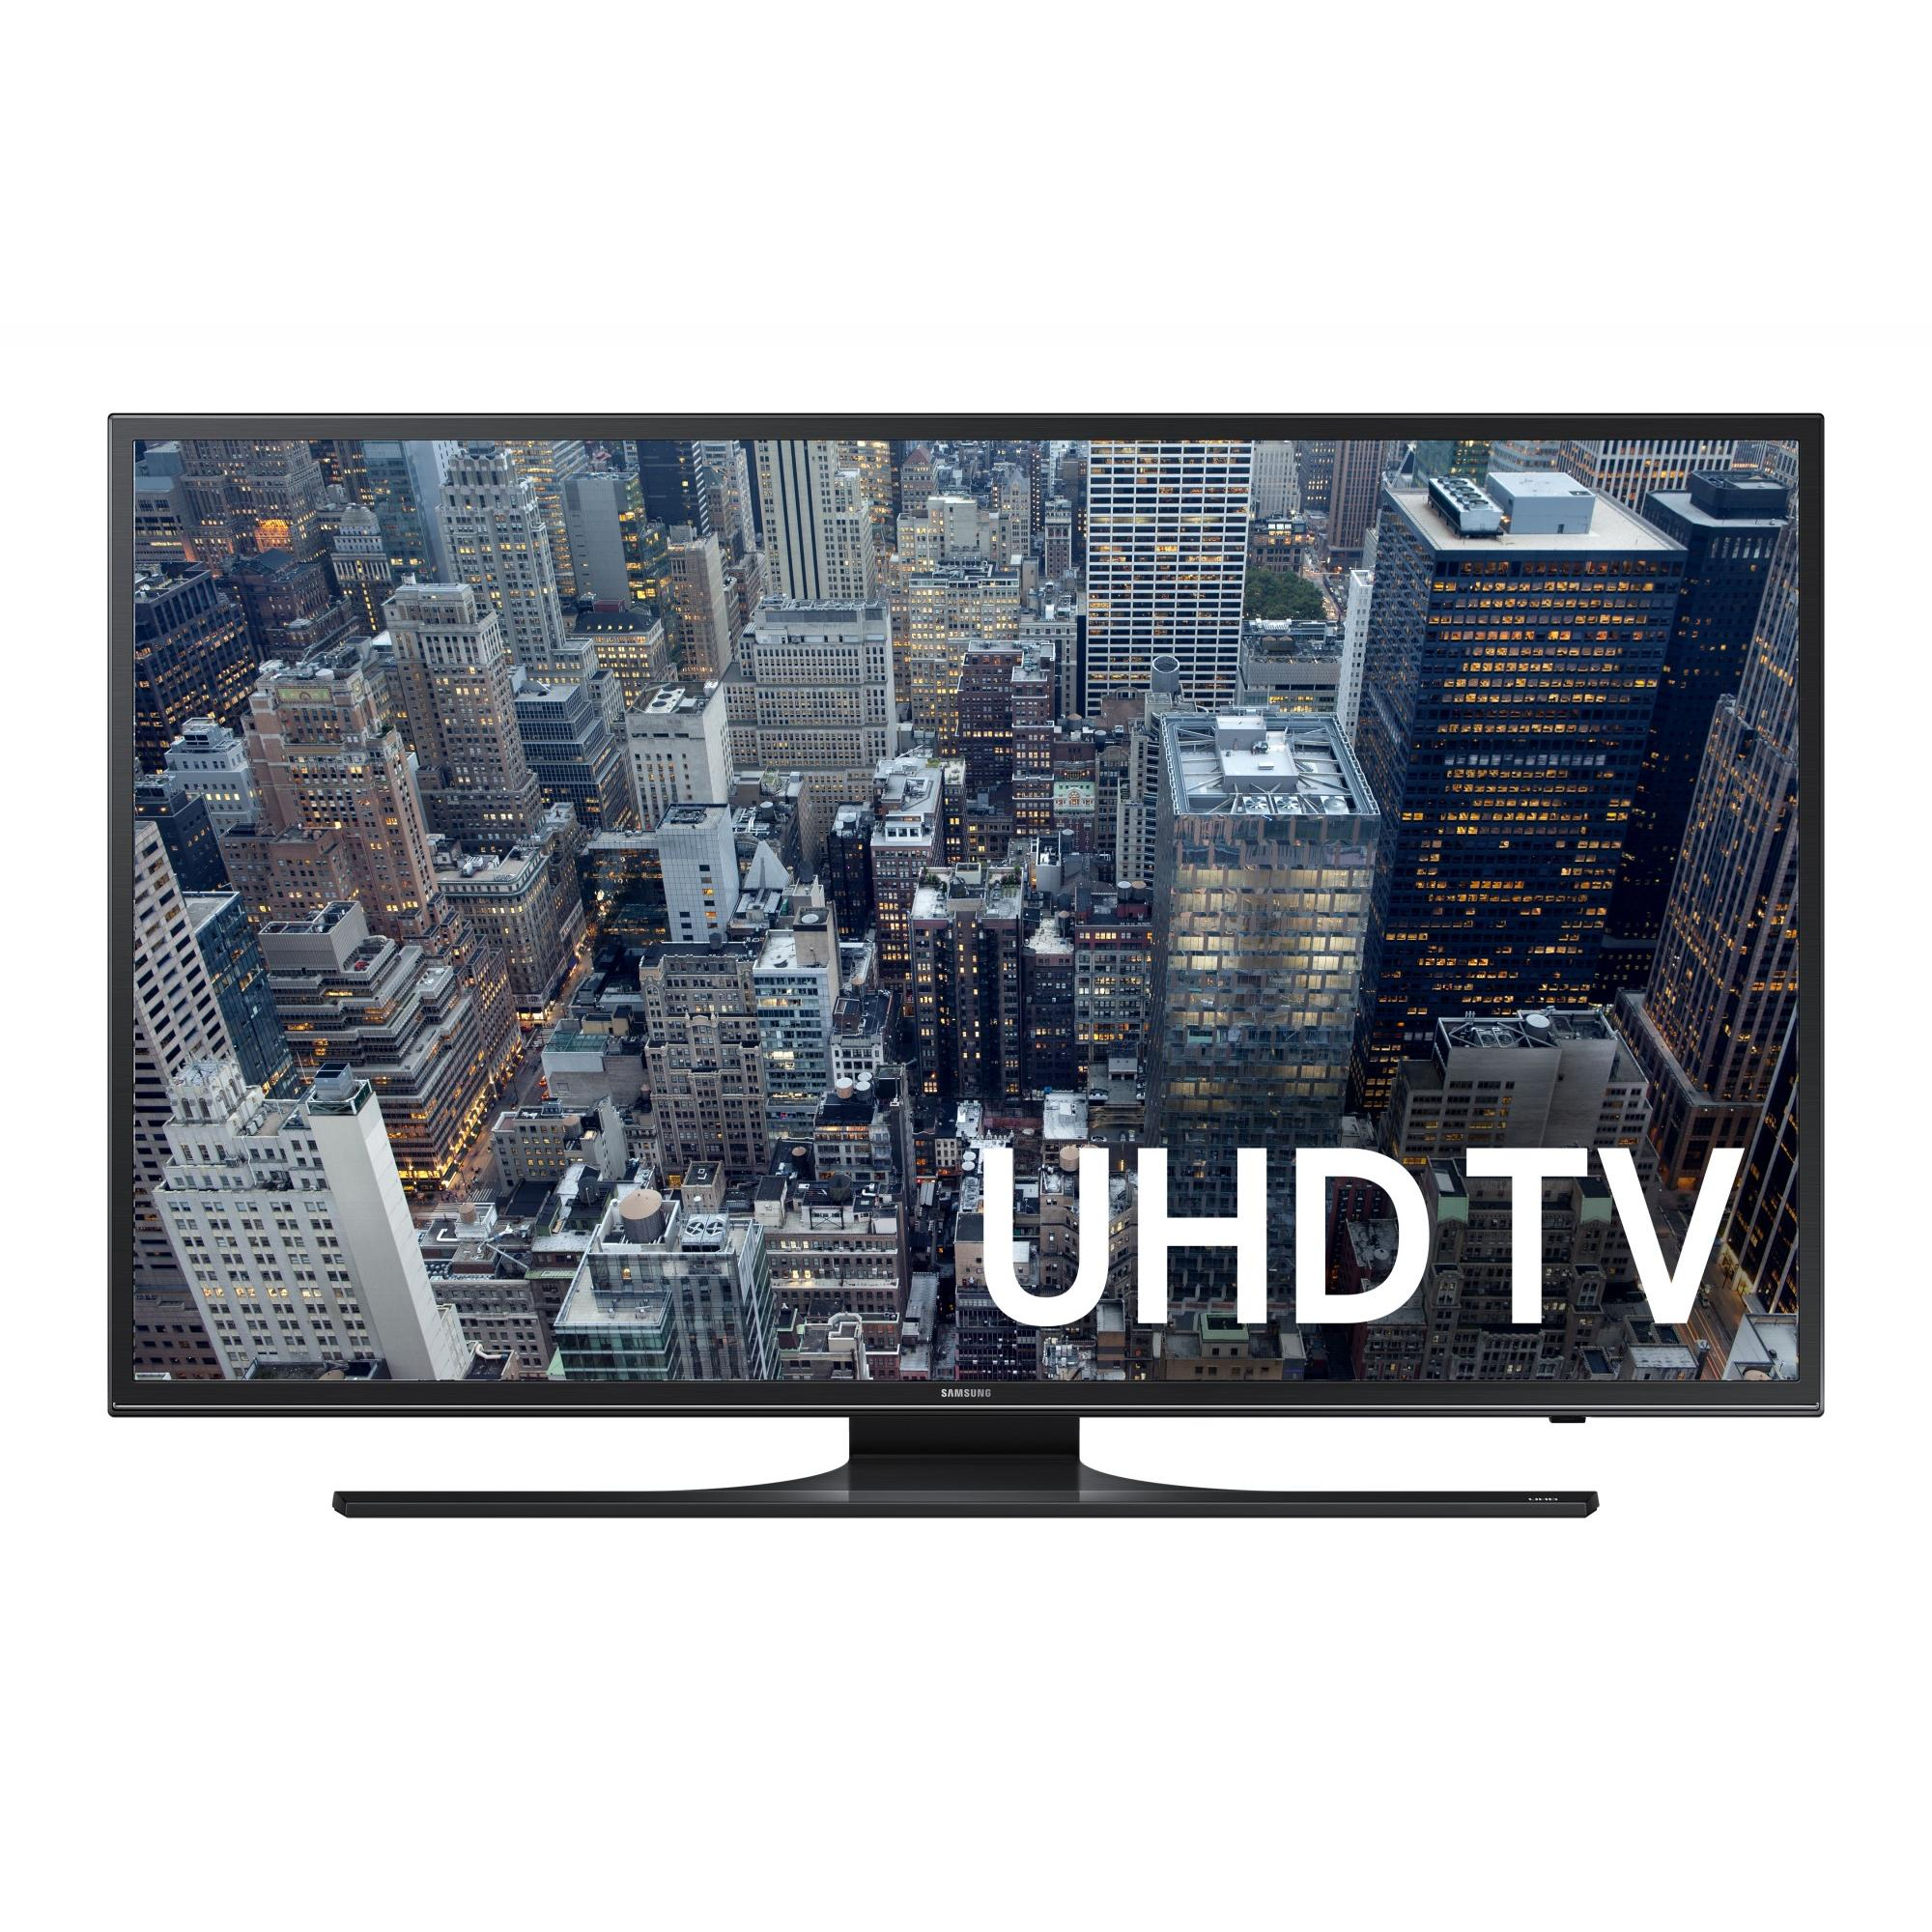 "Samsung UN55JU6500 55"" 4K Ultra HD 2160p 60Hz LED Smart HDTV (4K x 2K) - Qualifies for Premium Delivery"